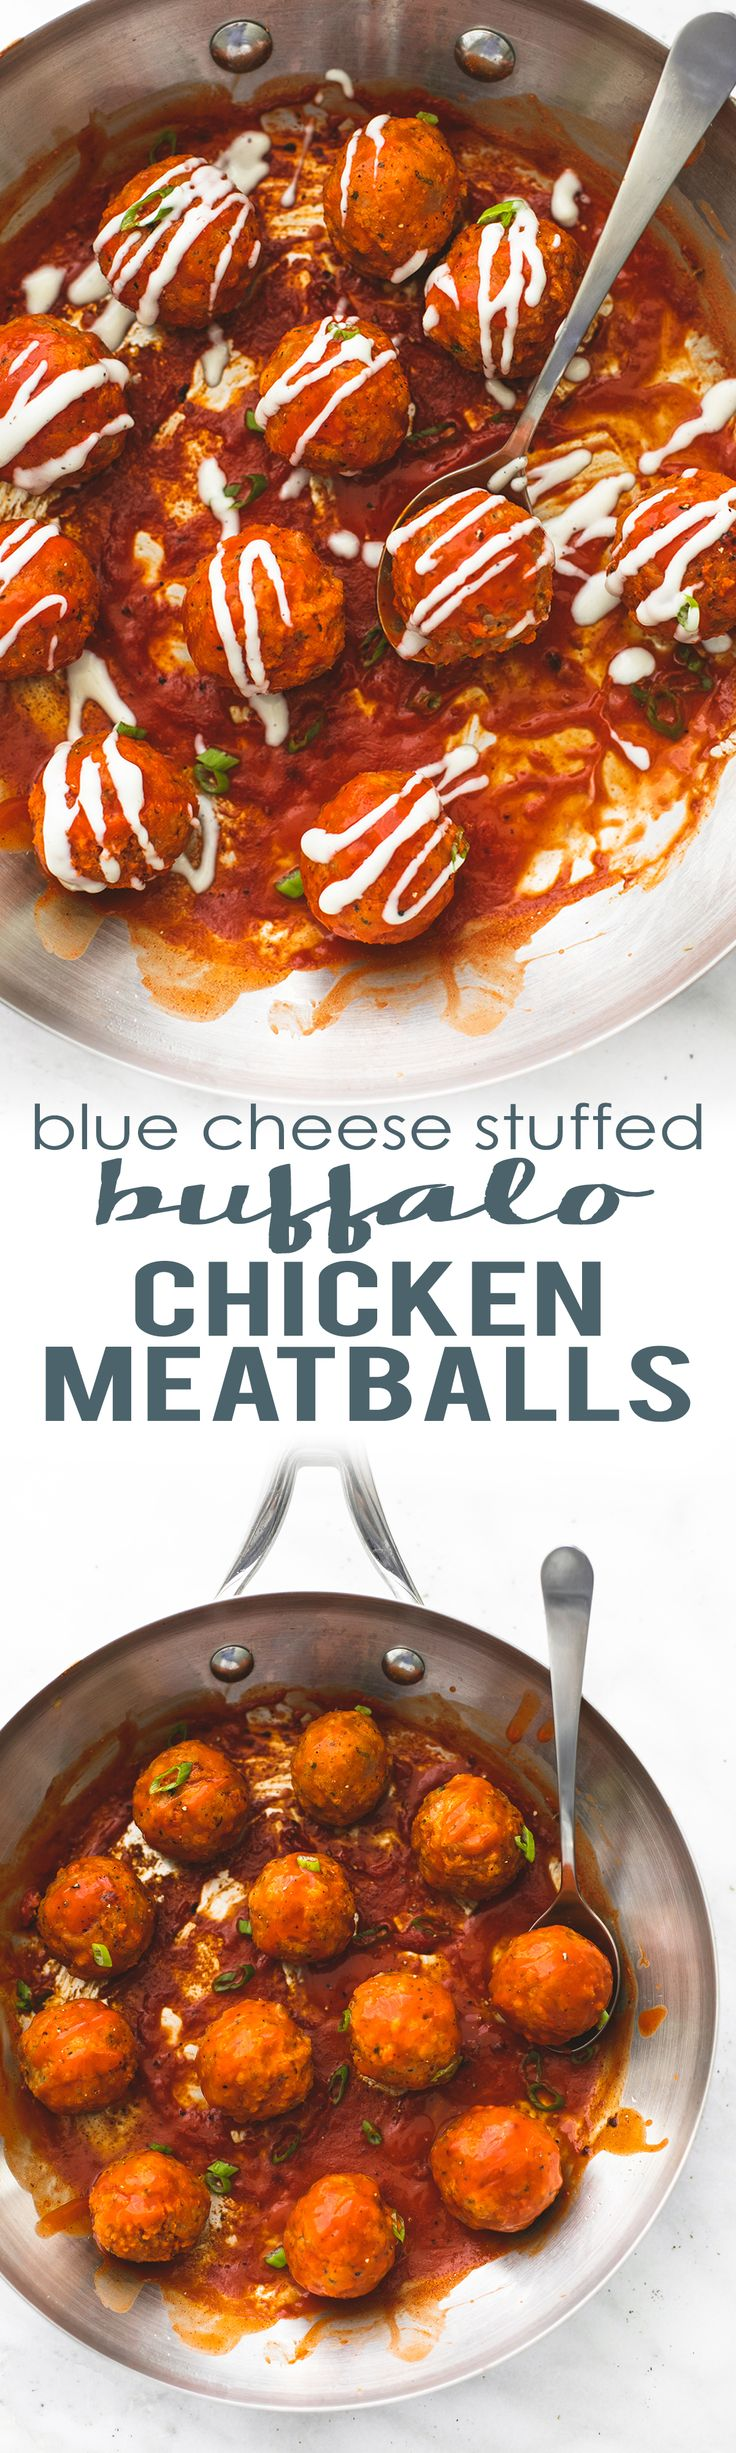 Blue Cheese Stuffed Buffallo Chicken Meatballs are the perfect appetizer for parties and tailgating!  | lecremedelacrumb.com